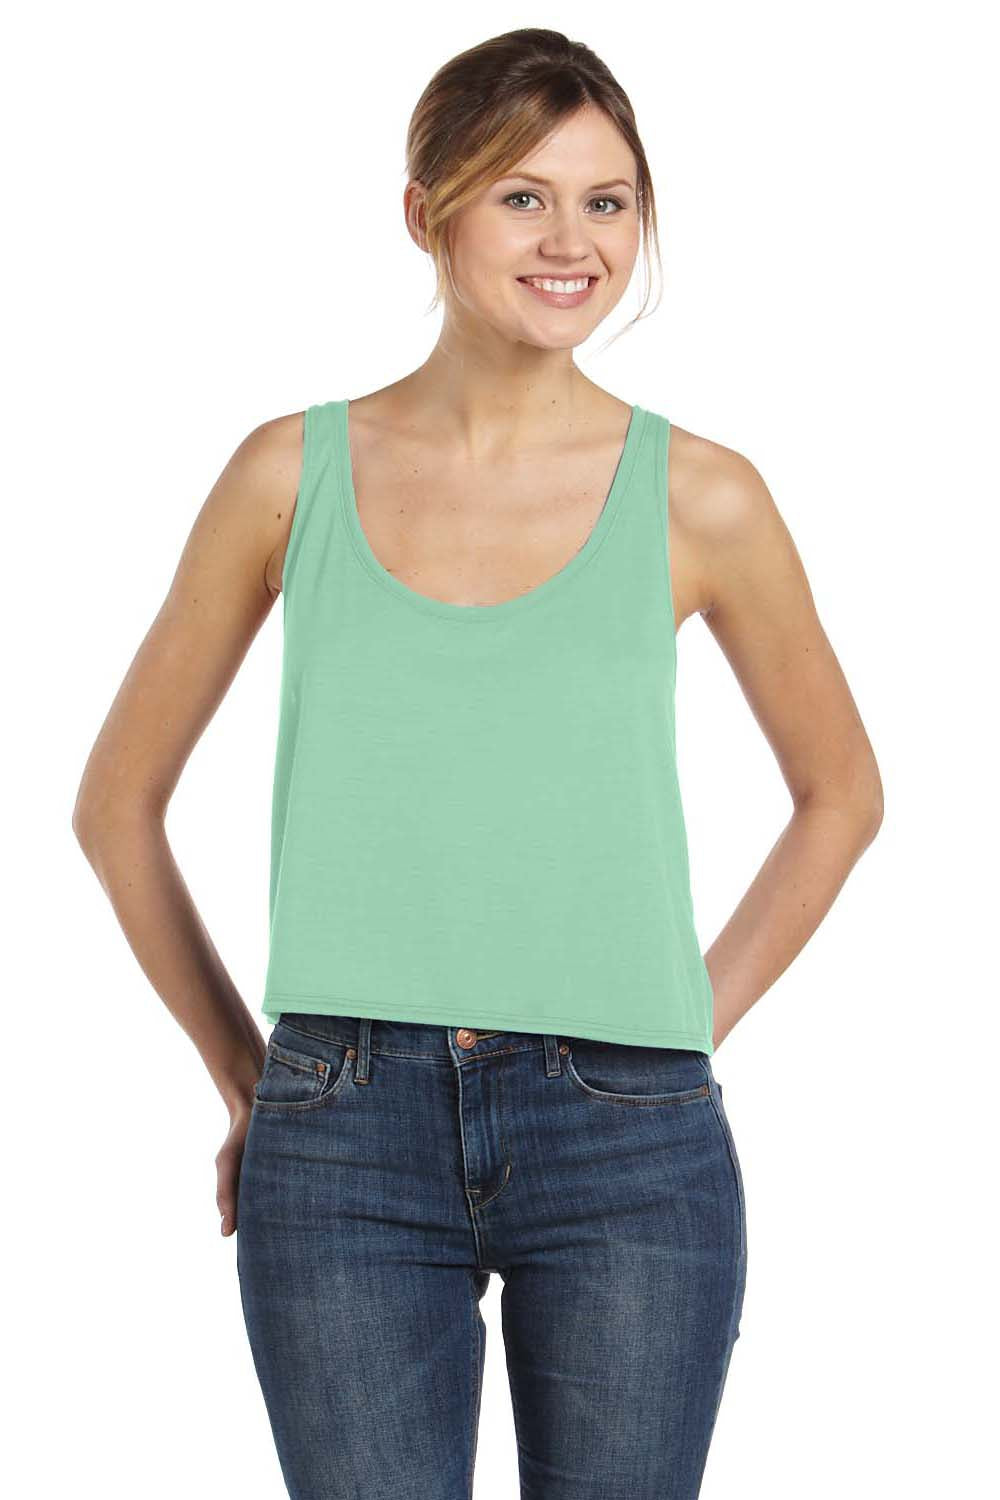 Bella + Canvas 8880 Womens Flowy Boxy Tank Top Mint Green Front